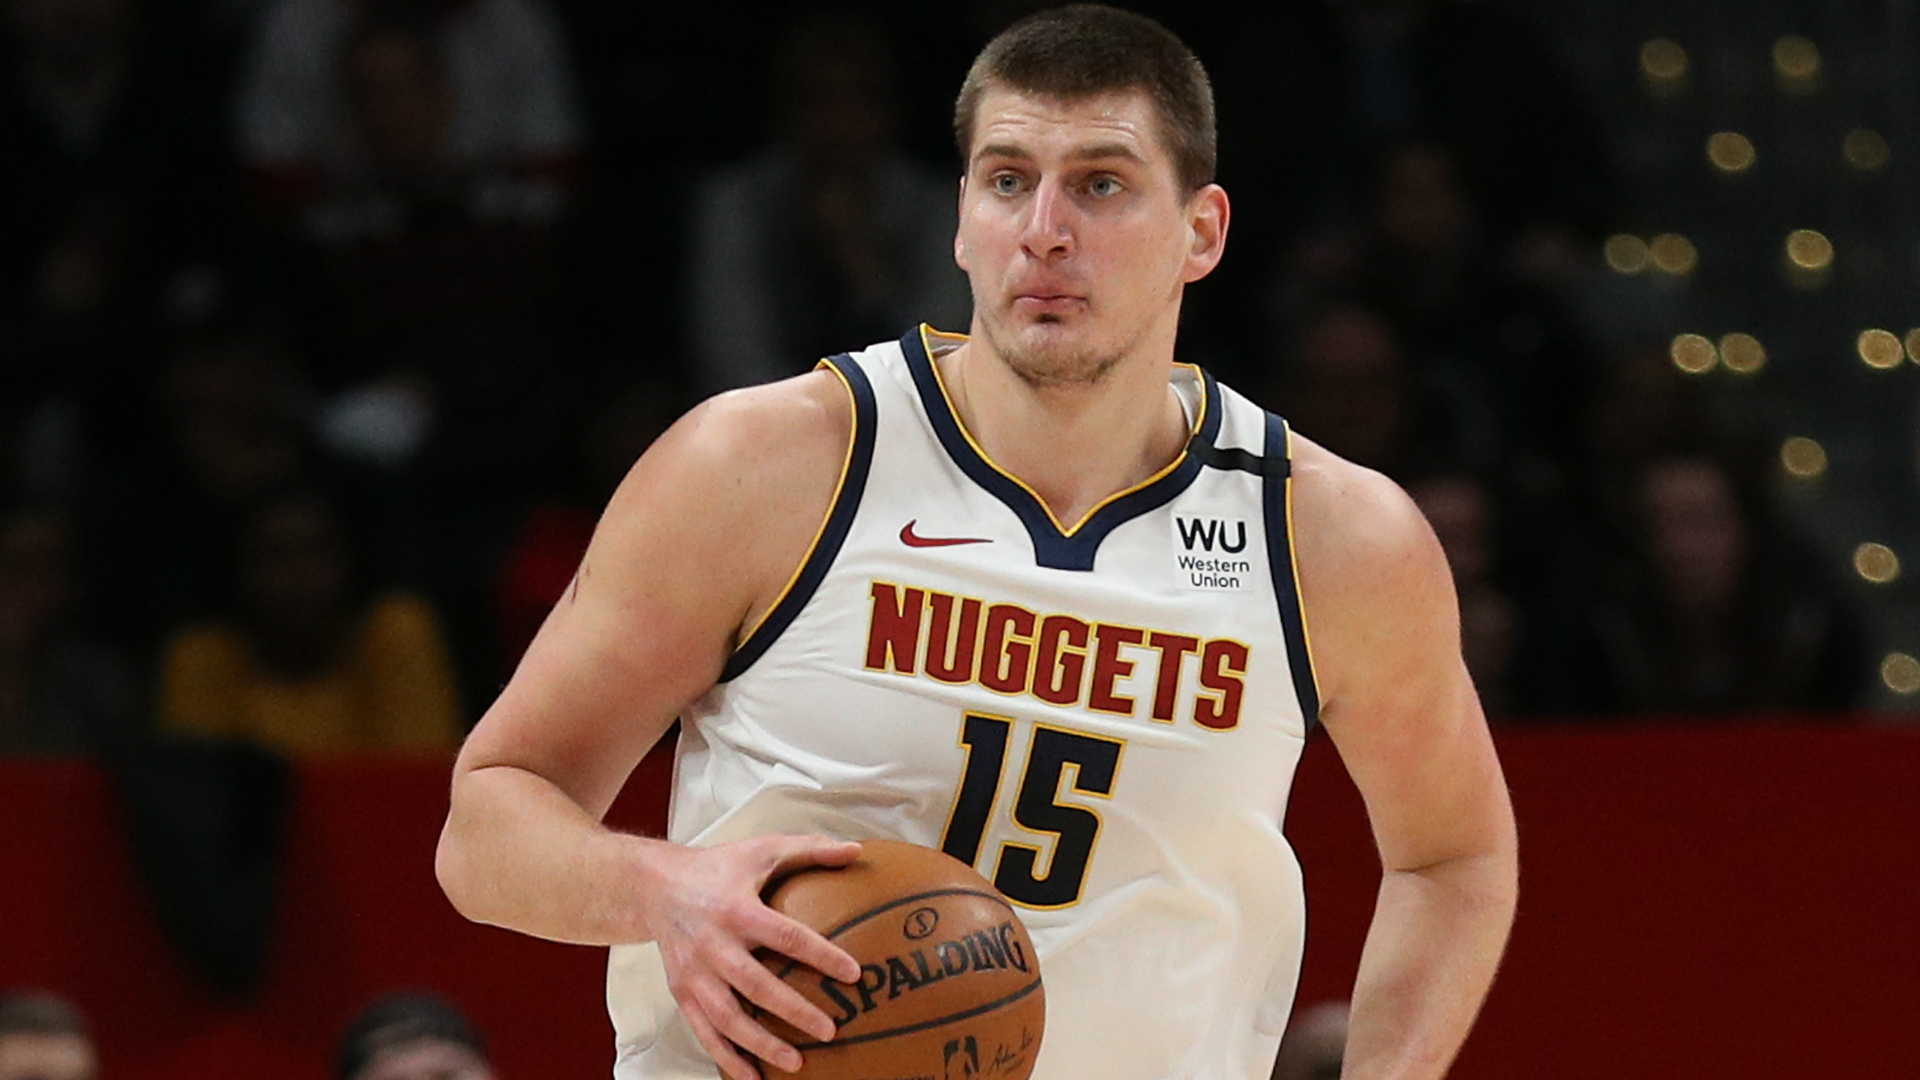 Nuggets expect to have All-Star Nikola Jokic for NBA restart - sporting news